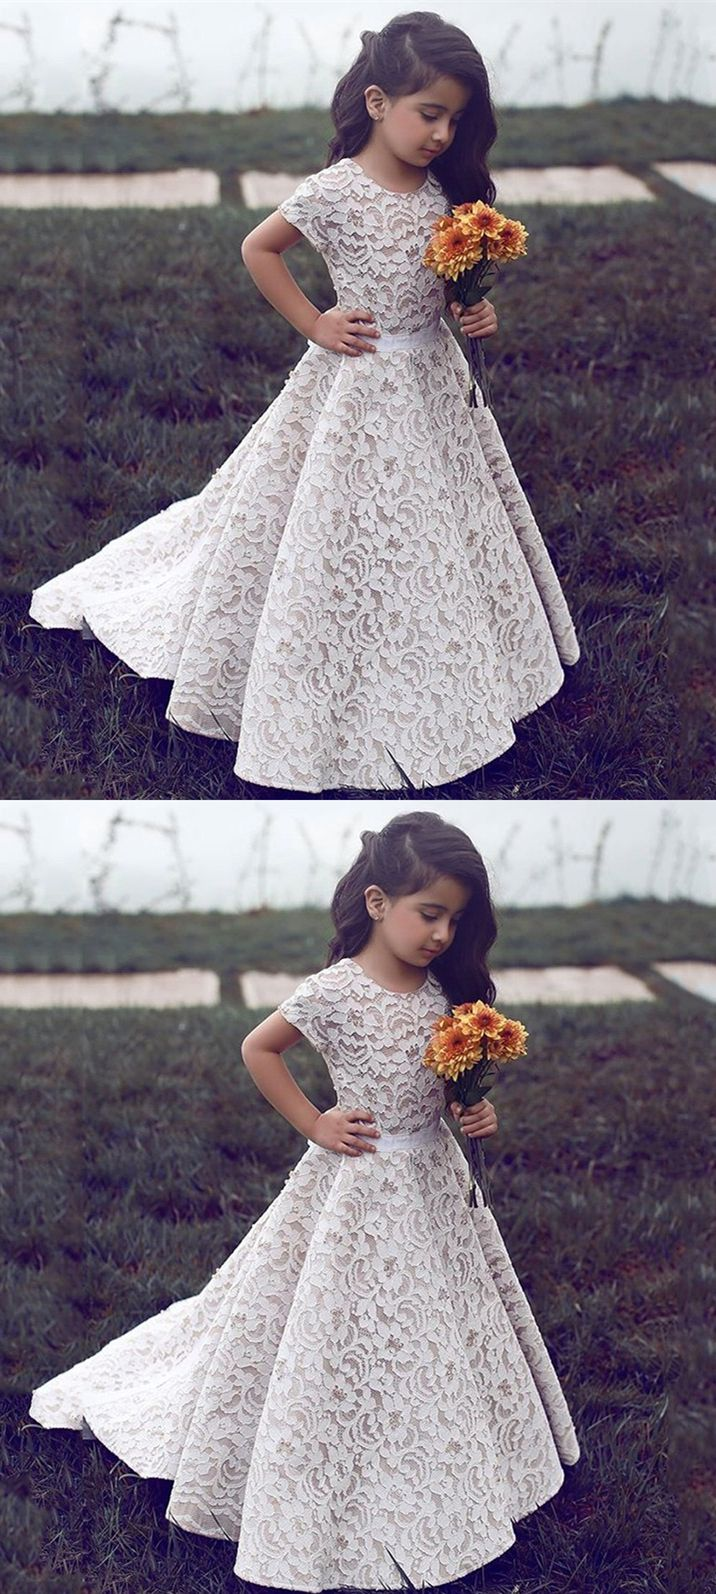 A-Line Flower Girl Dresses,Round Neck Flower Girl Dresses,Short Sleeves Flower Girl Dresses,White Flower Girl Dresses,Lace Flower Girl Dresses,Cute Flower Girl Dresses,Princess  Flower Girl Dresses,Long Flower Girl Dresses